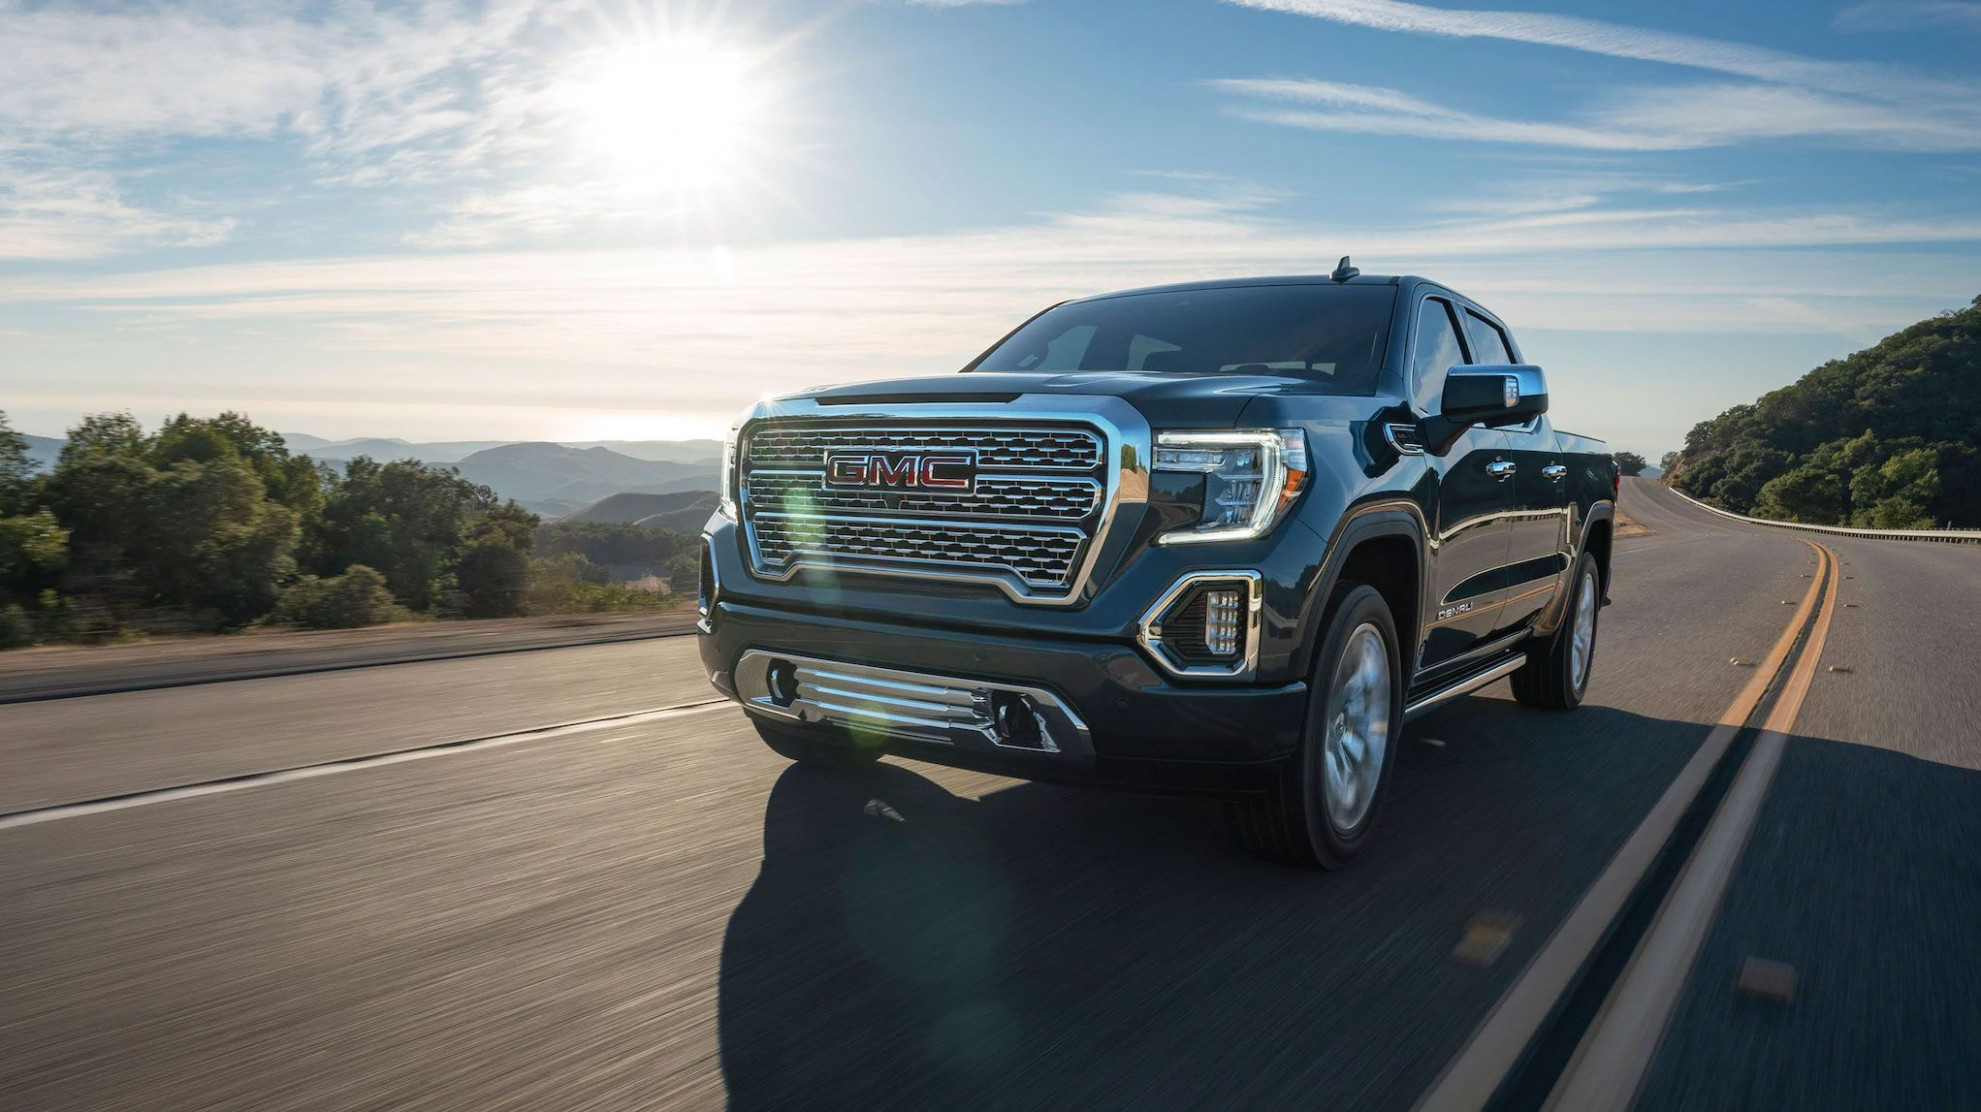 11 GMC Sierra 11 Review, Pricing, and Specs